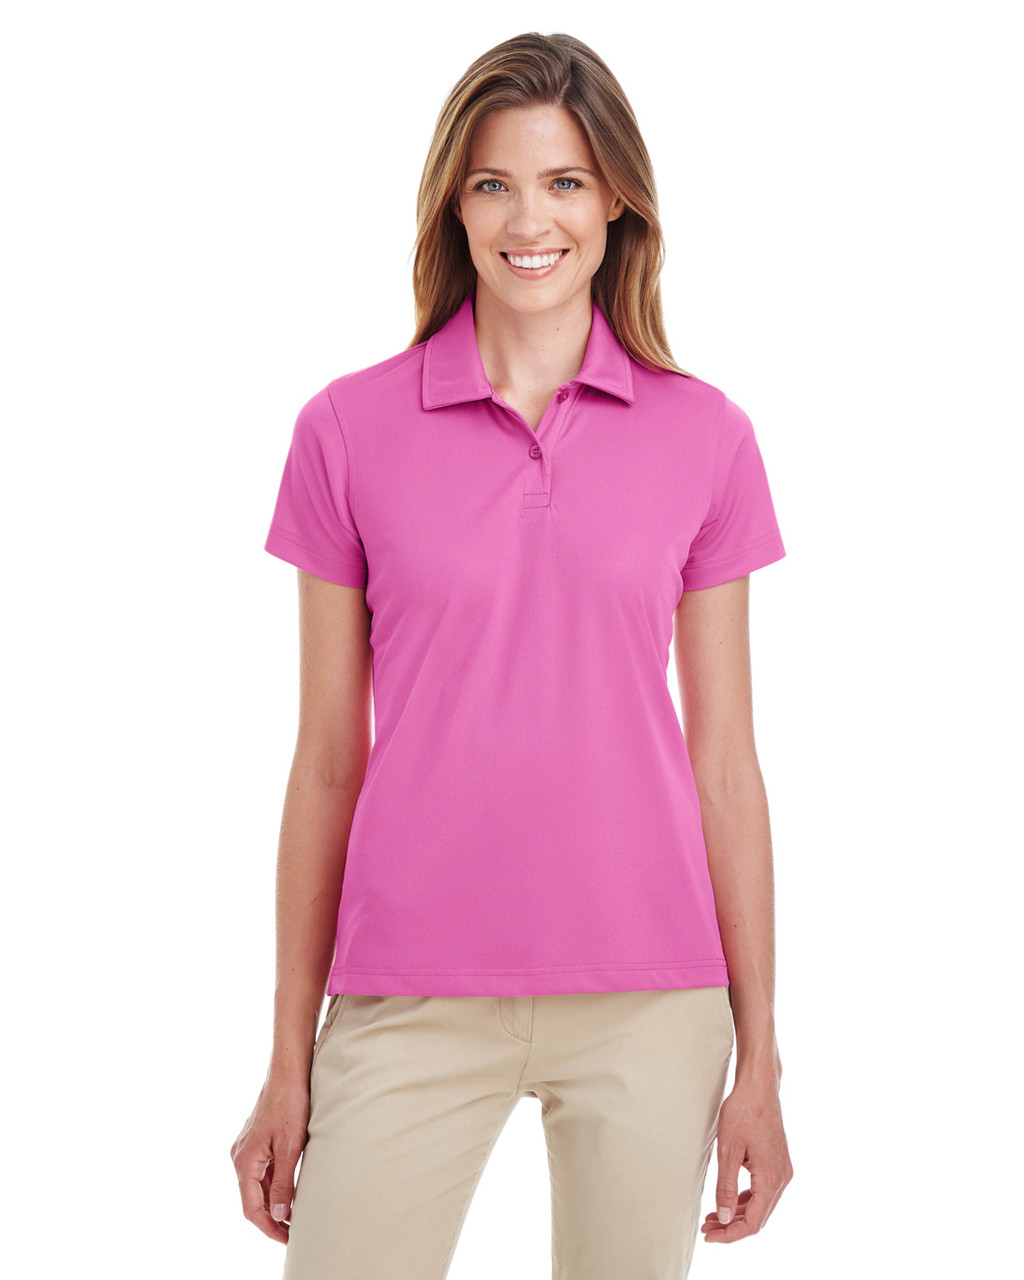 Sport Charity Pink - TT21W Team 365 Ladies' Command Snag Protection Polo Shirt